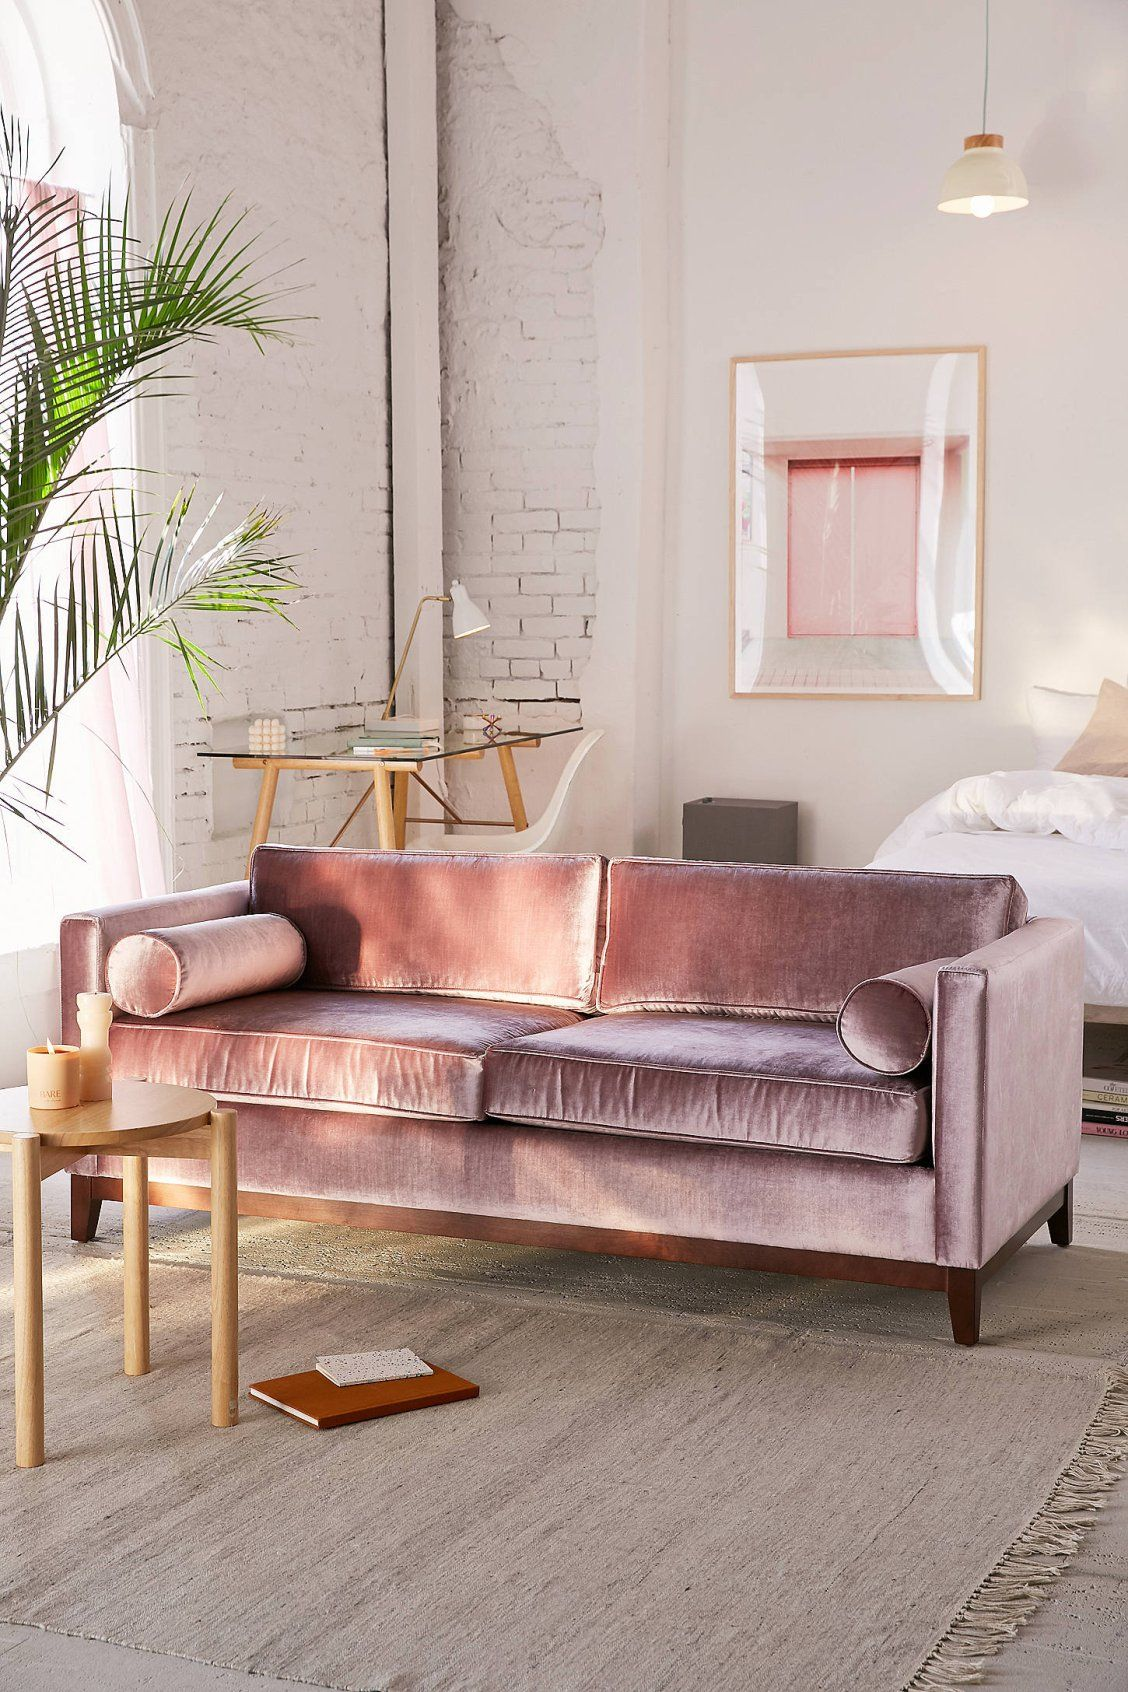 Urban Sofa Gallery Brisbane Microfiber Sectional With Ottoman Piper Petite Velvet Uohome Pinterest Living Room Home Pillow Set Outfitters